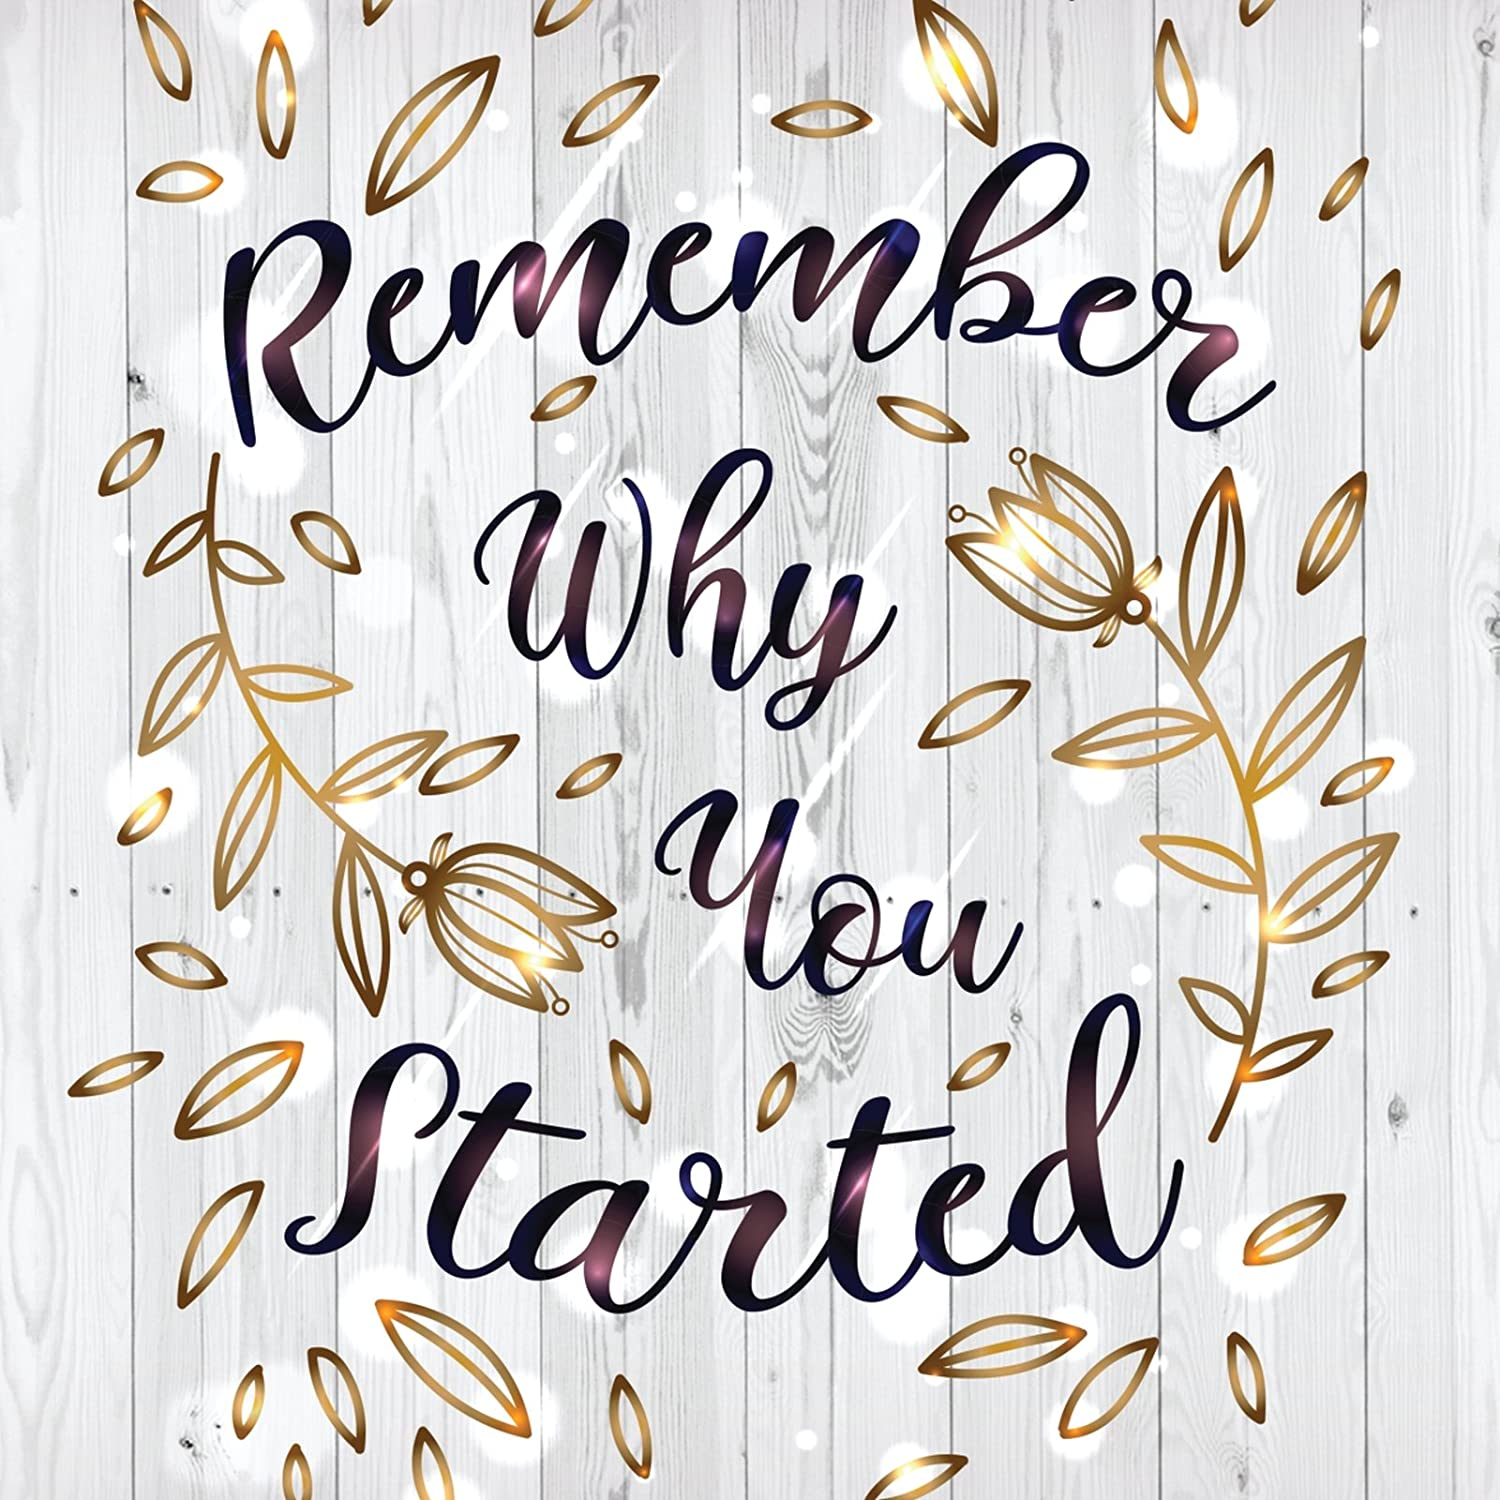 iCandy Products Inc Remember Why You Started Motivational Inspirational Wall Decor Home Art Print, Square Signs - Plastic